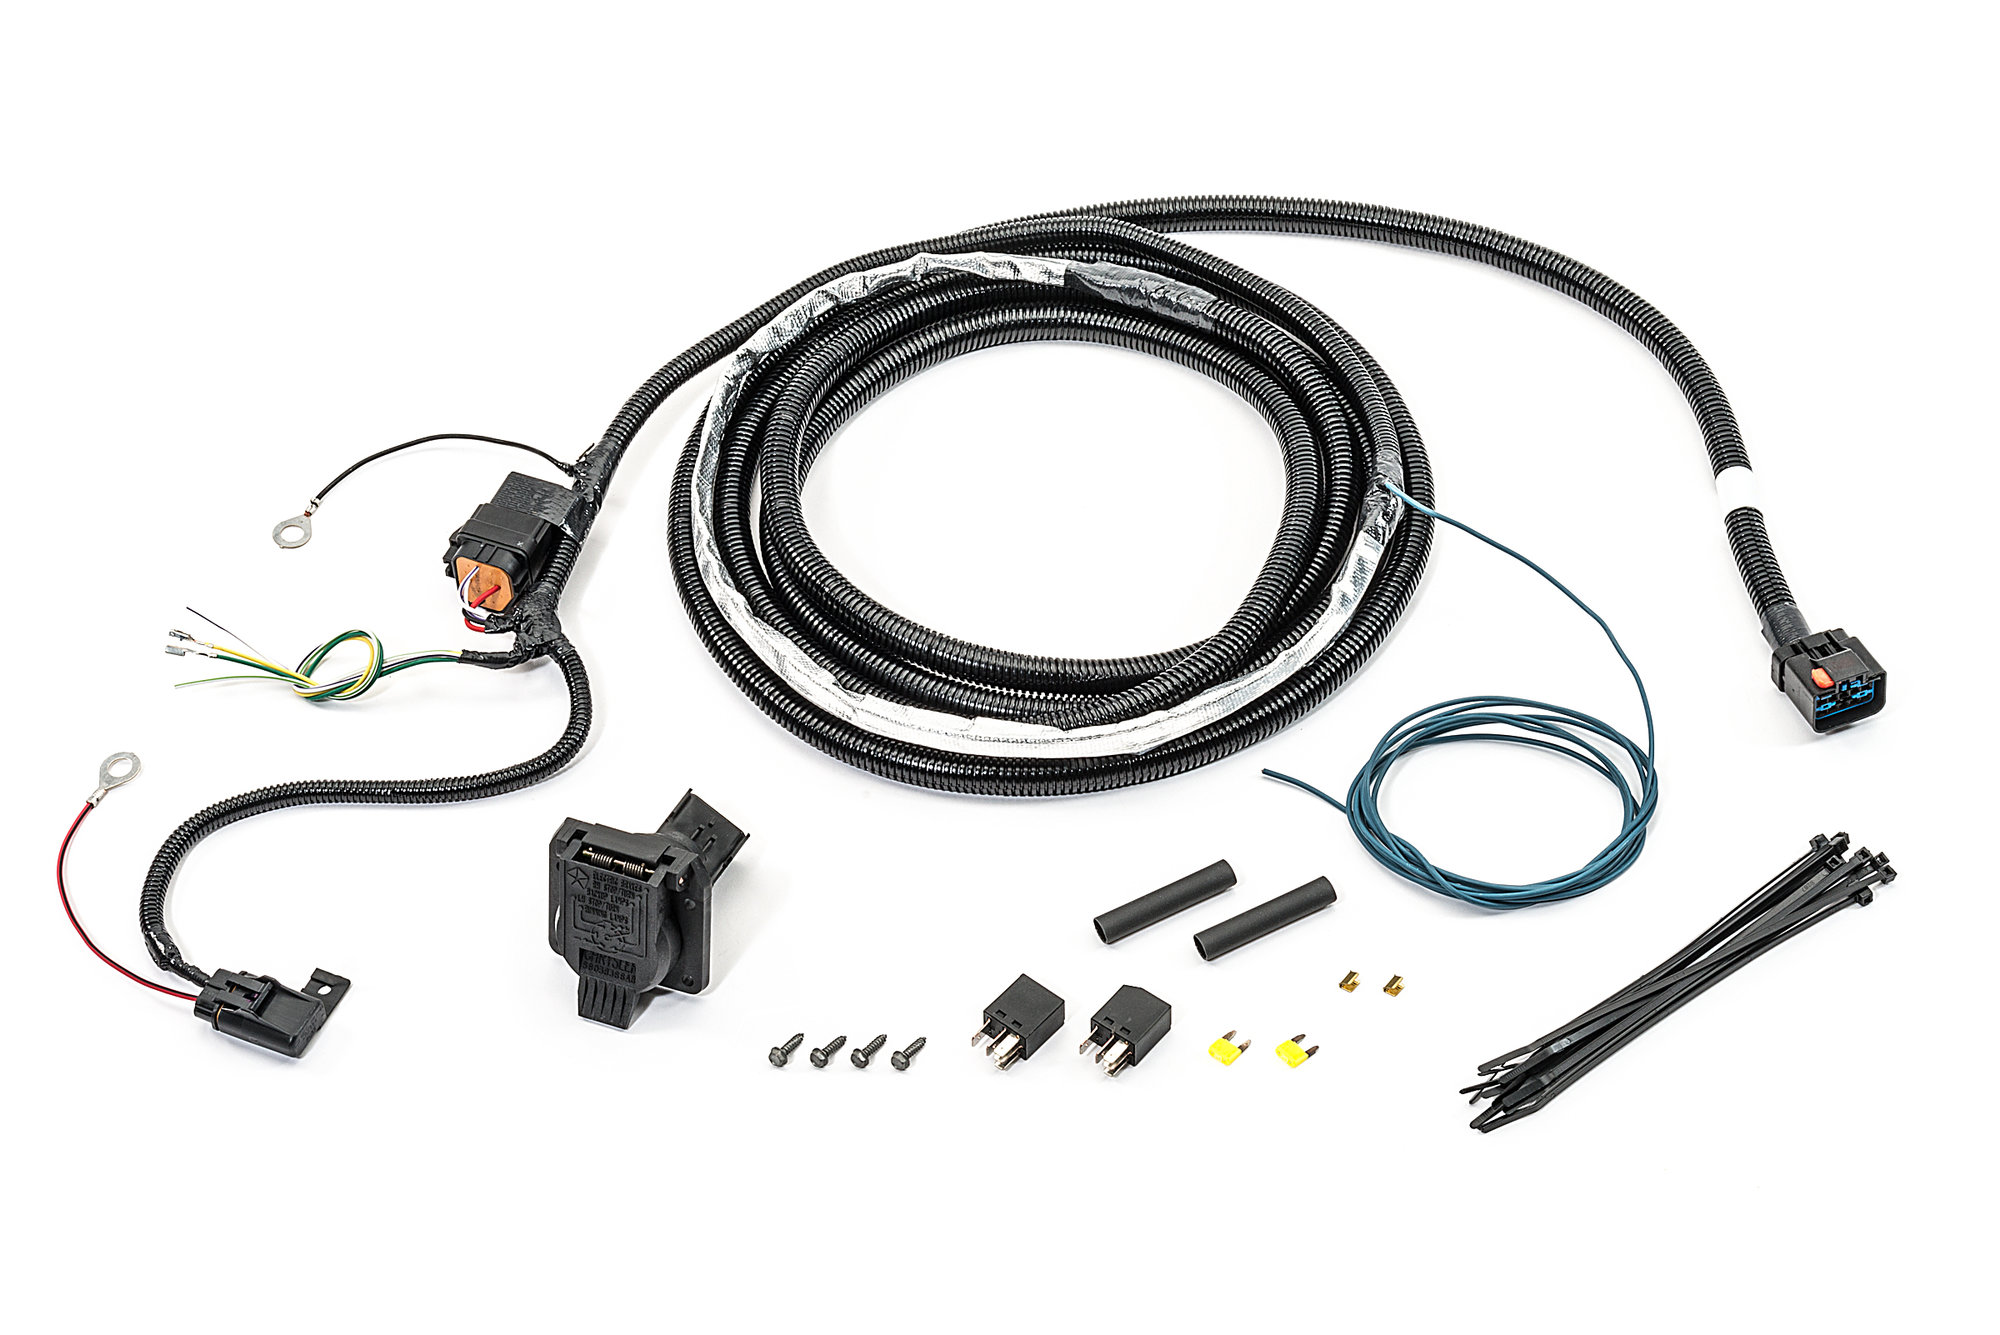 hight resolution of mopar 82211150ac 7 way round hitch wiring harness for 07 09 jeep grand cherokee wk previous next